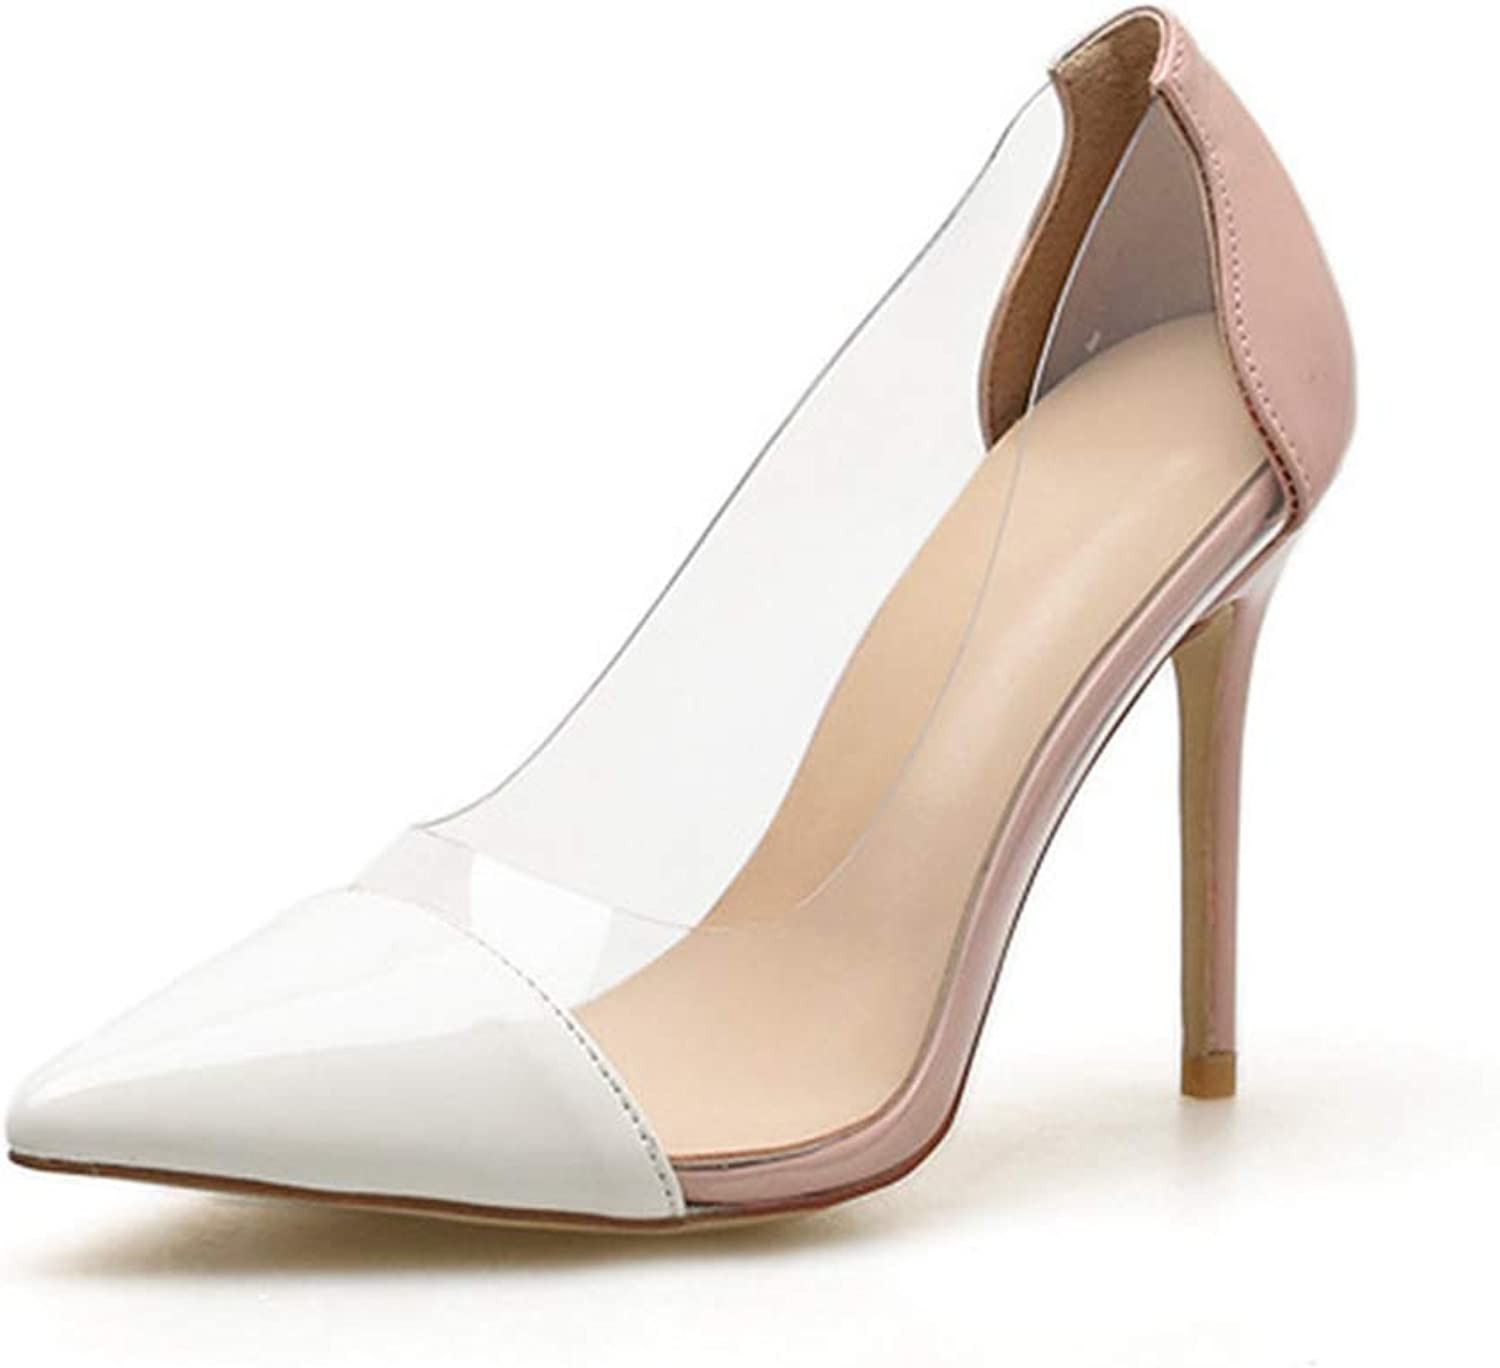 Drew Toby Women Pumps Pointed-Toe Shallow Mouth Transparent Fashion Elegant High Heels